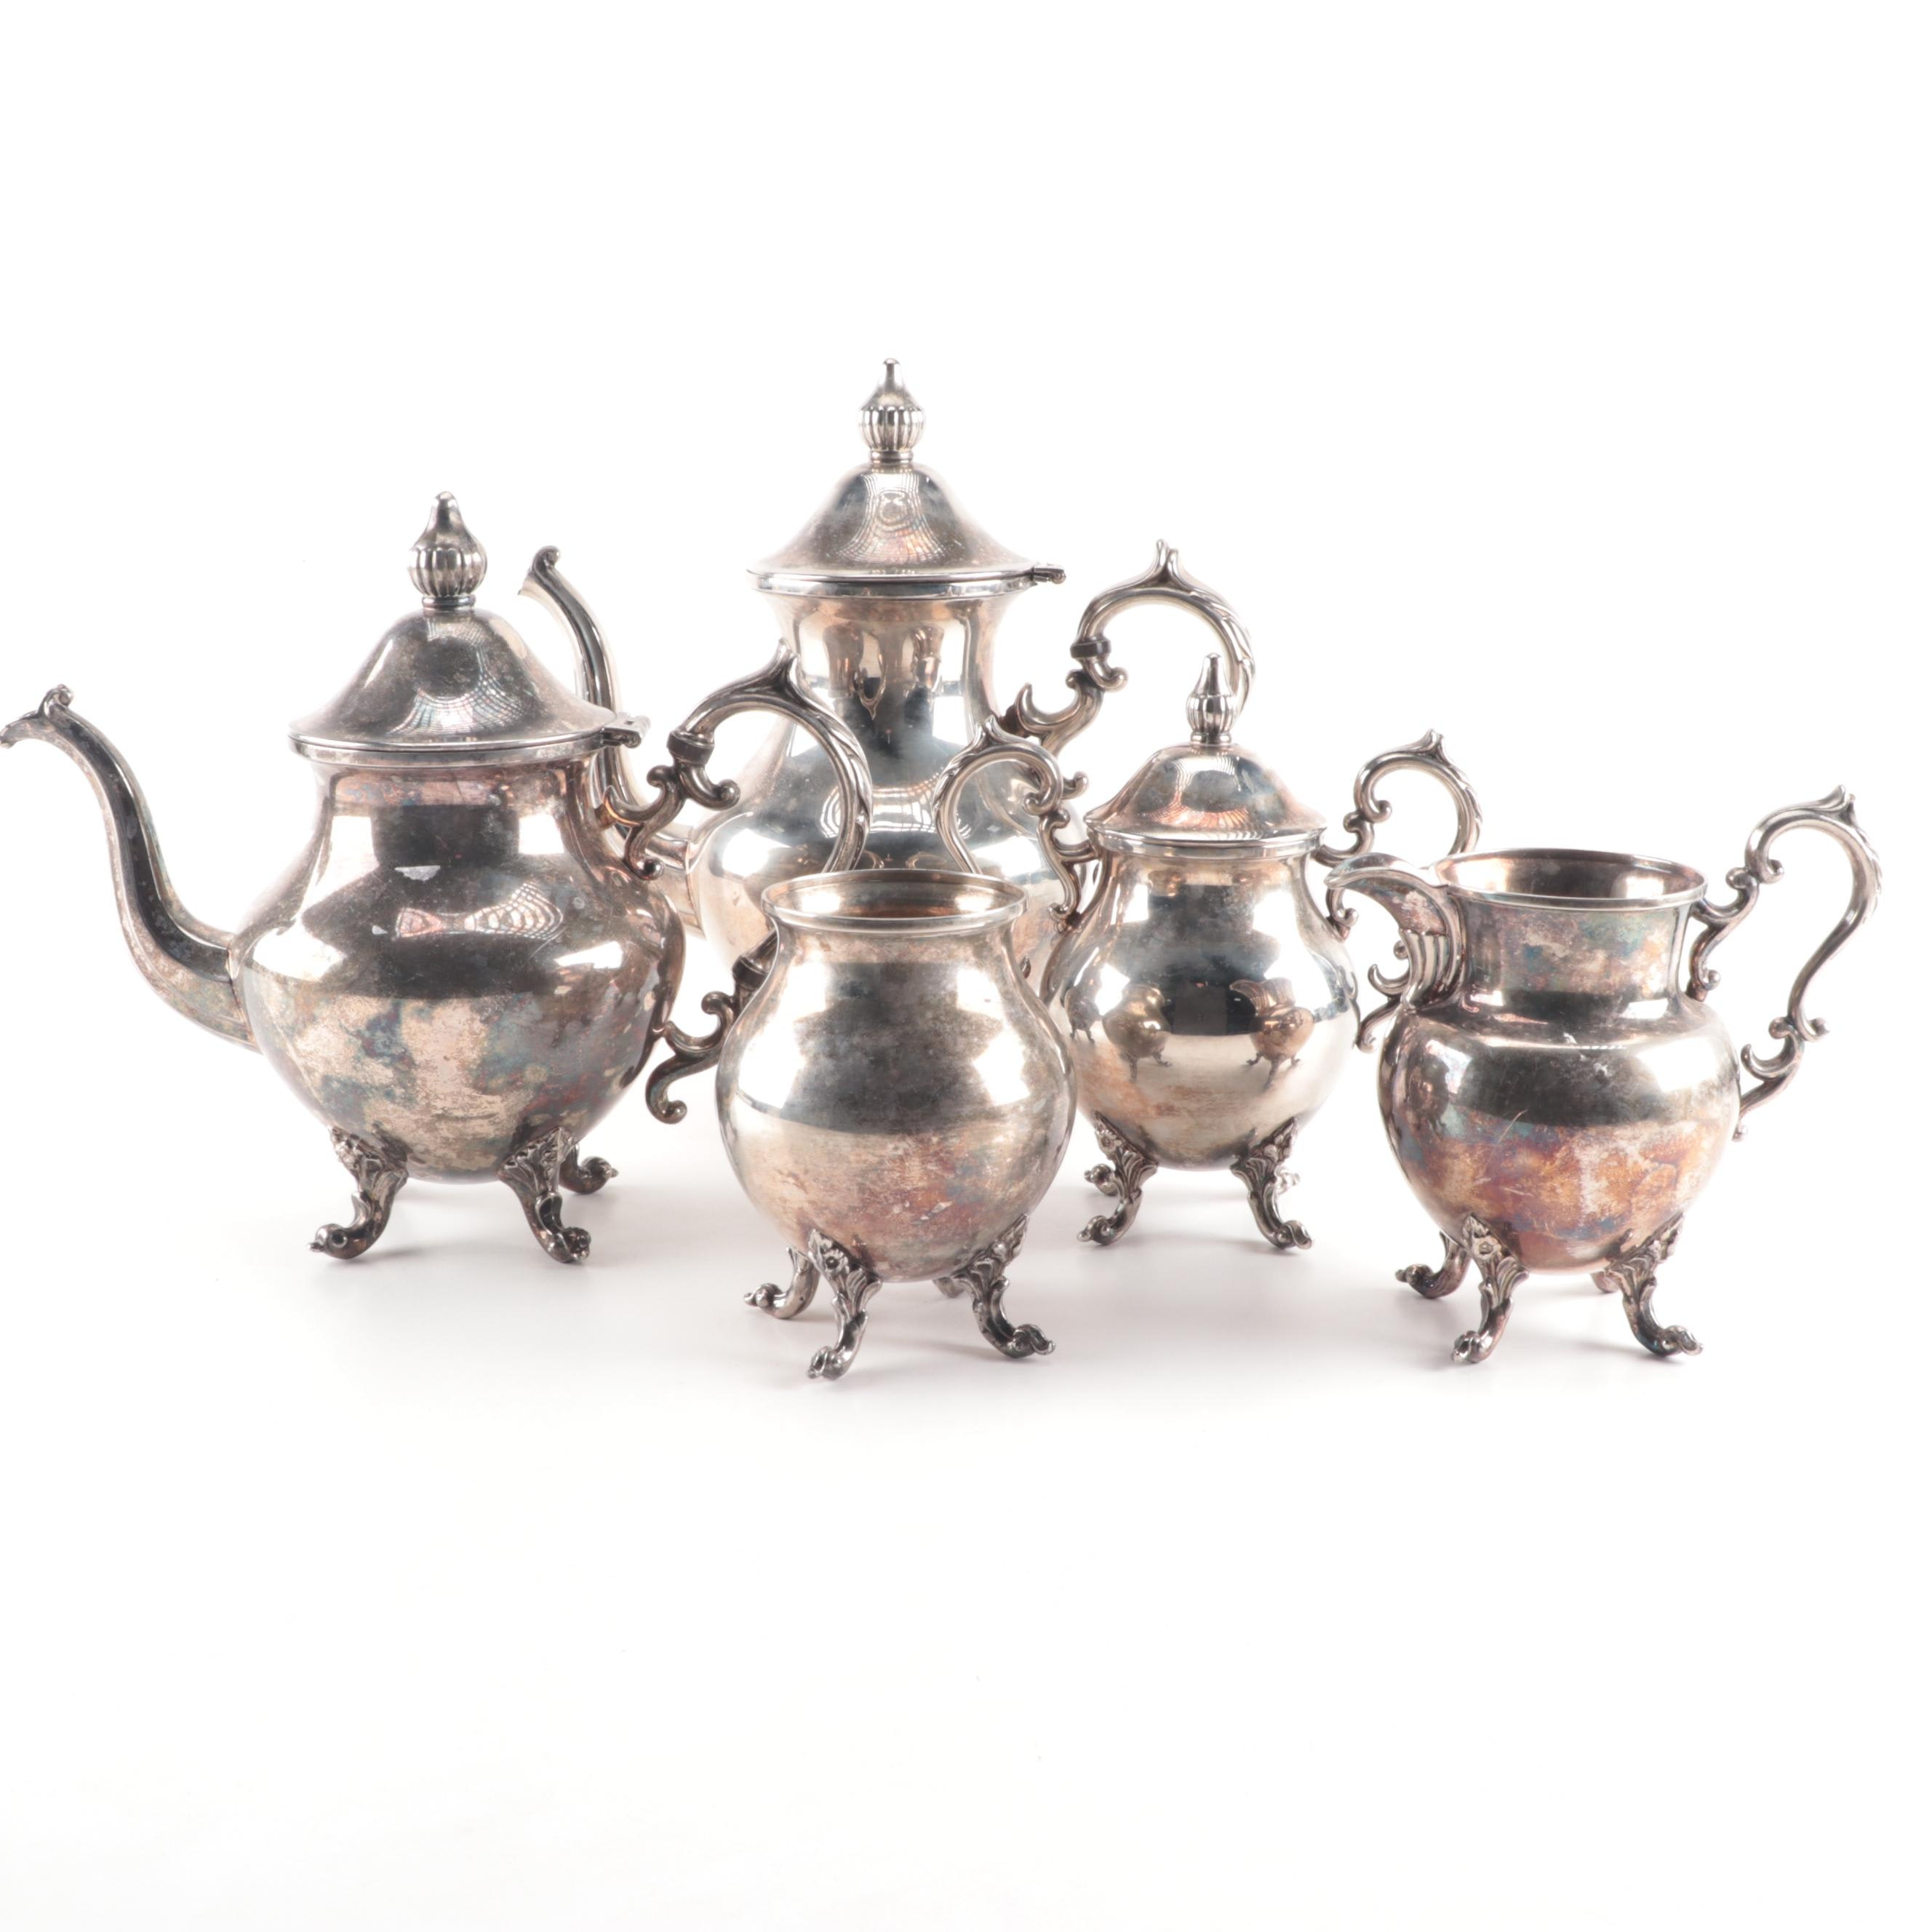 Vintage Birmingham Silver Co. Five-Piece Silver Plate Tea and Coffee Service Set